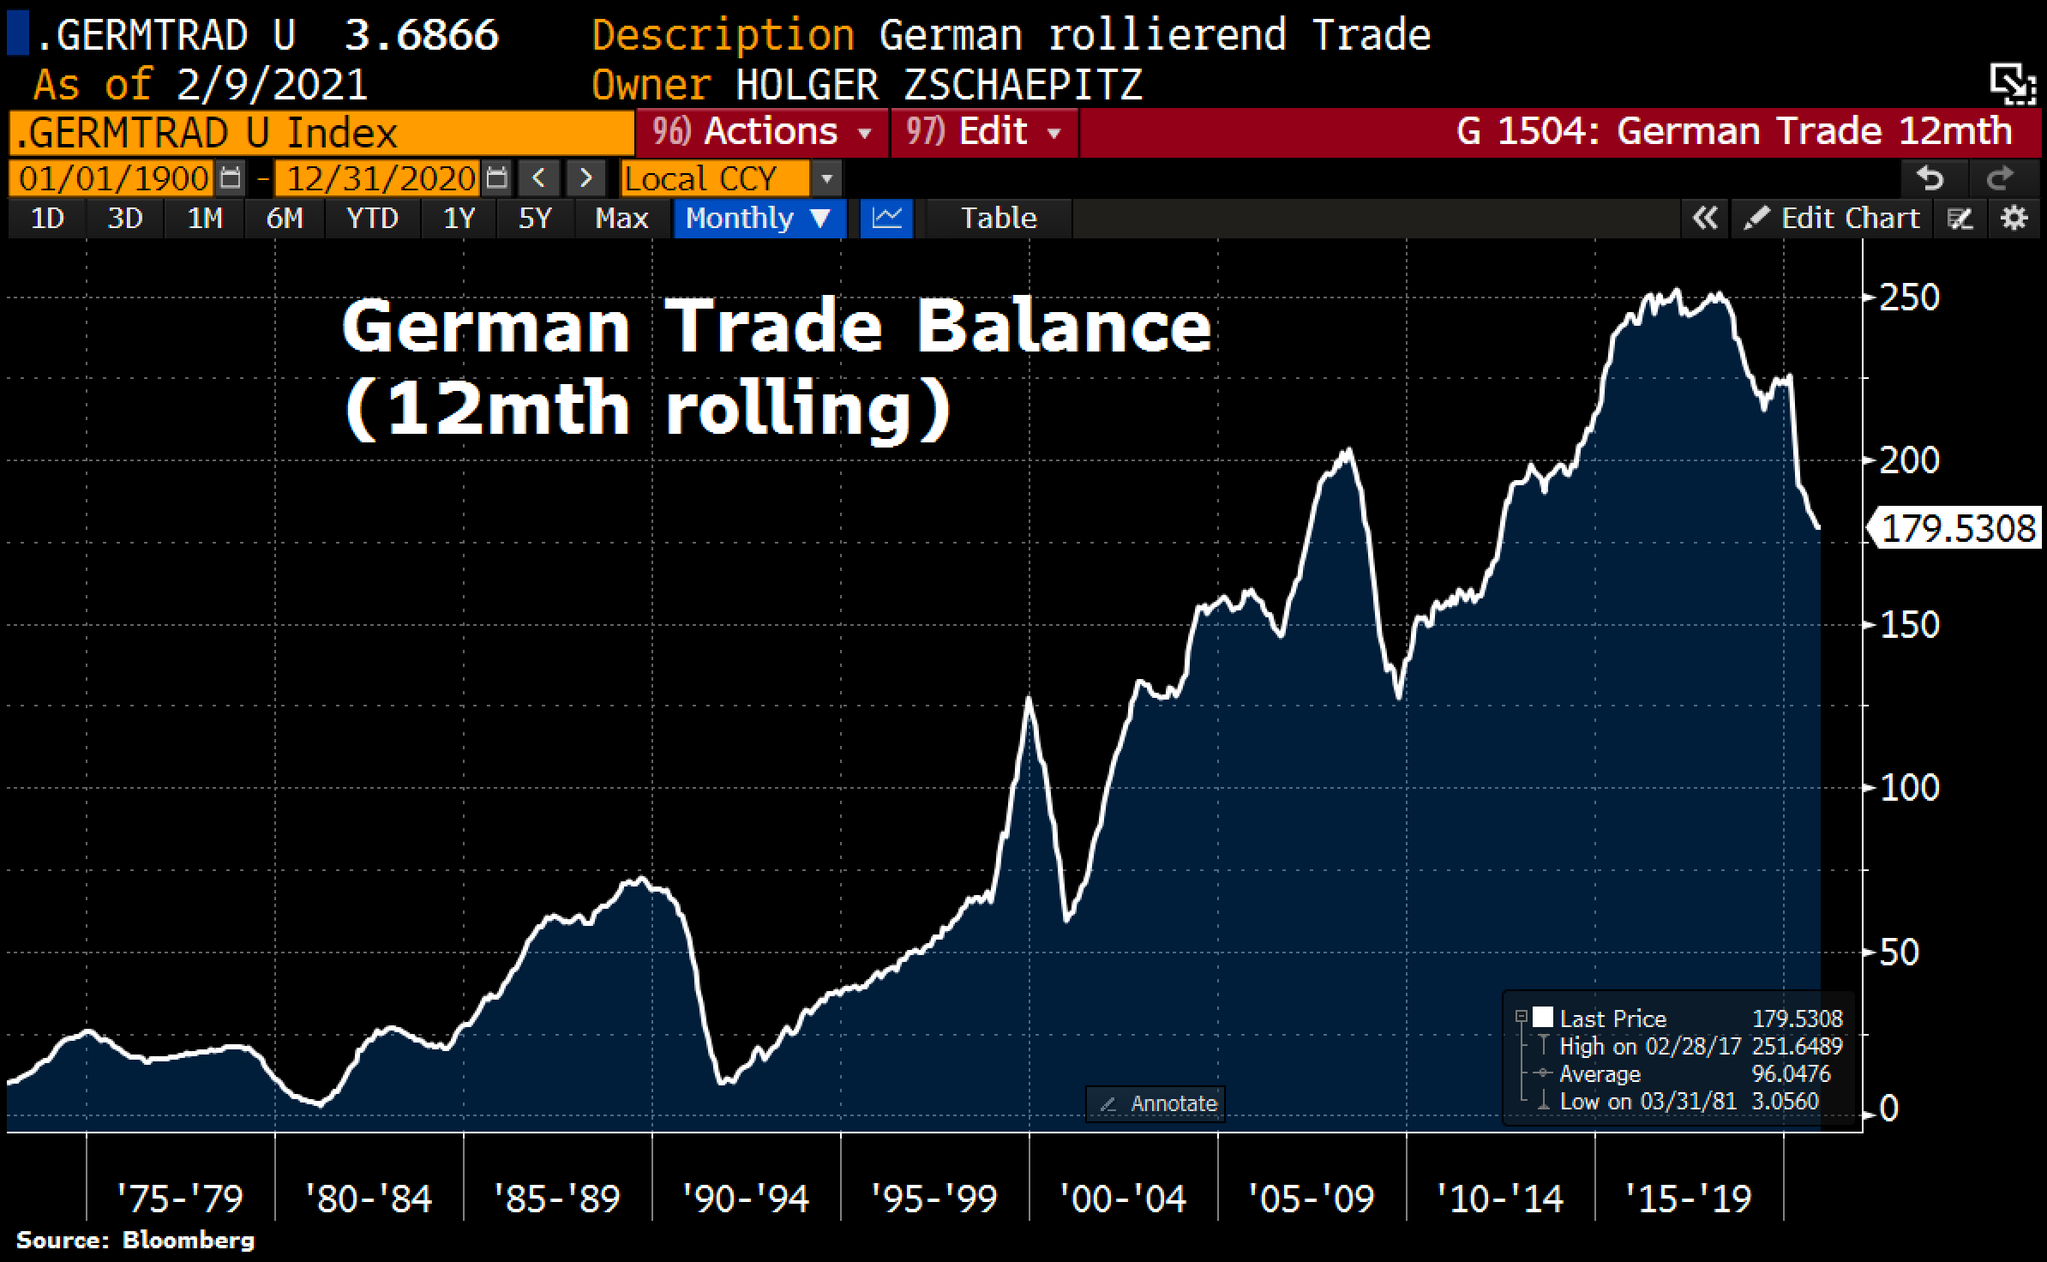 While China's trade surplous hit records in 2020, same can't be said for Germany